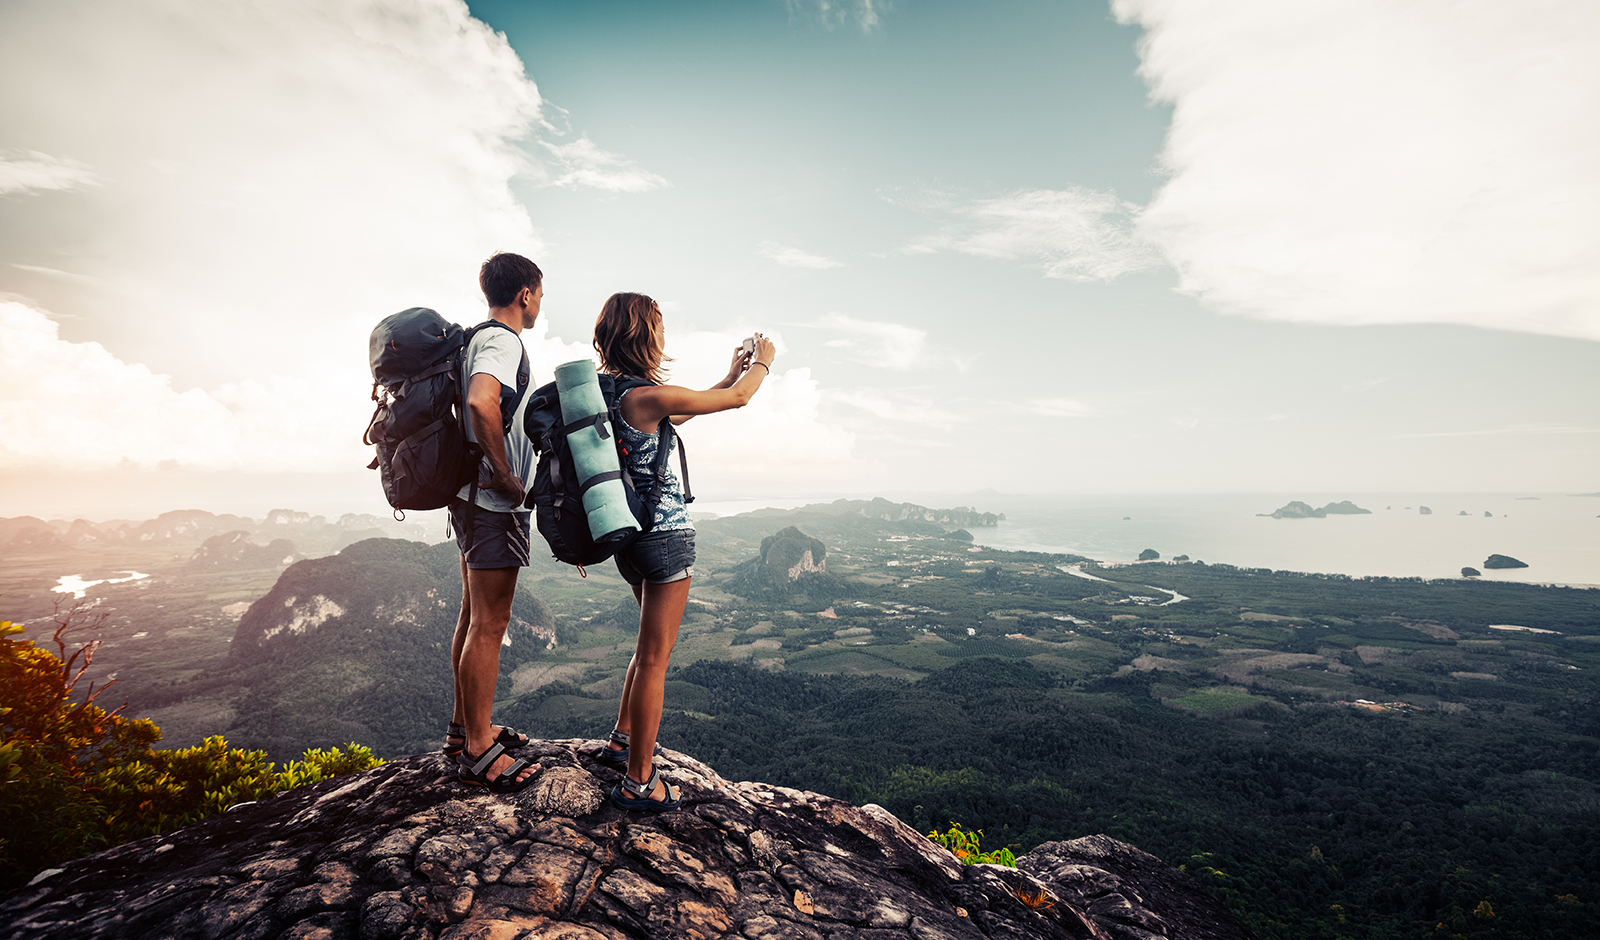 the-kinds-of-people-you-shouldn't-date-couple-on-a-hike-together-in-nature